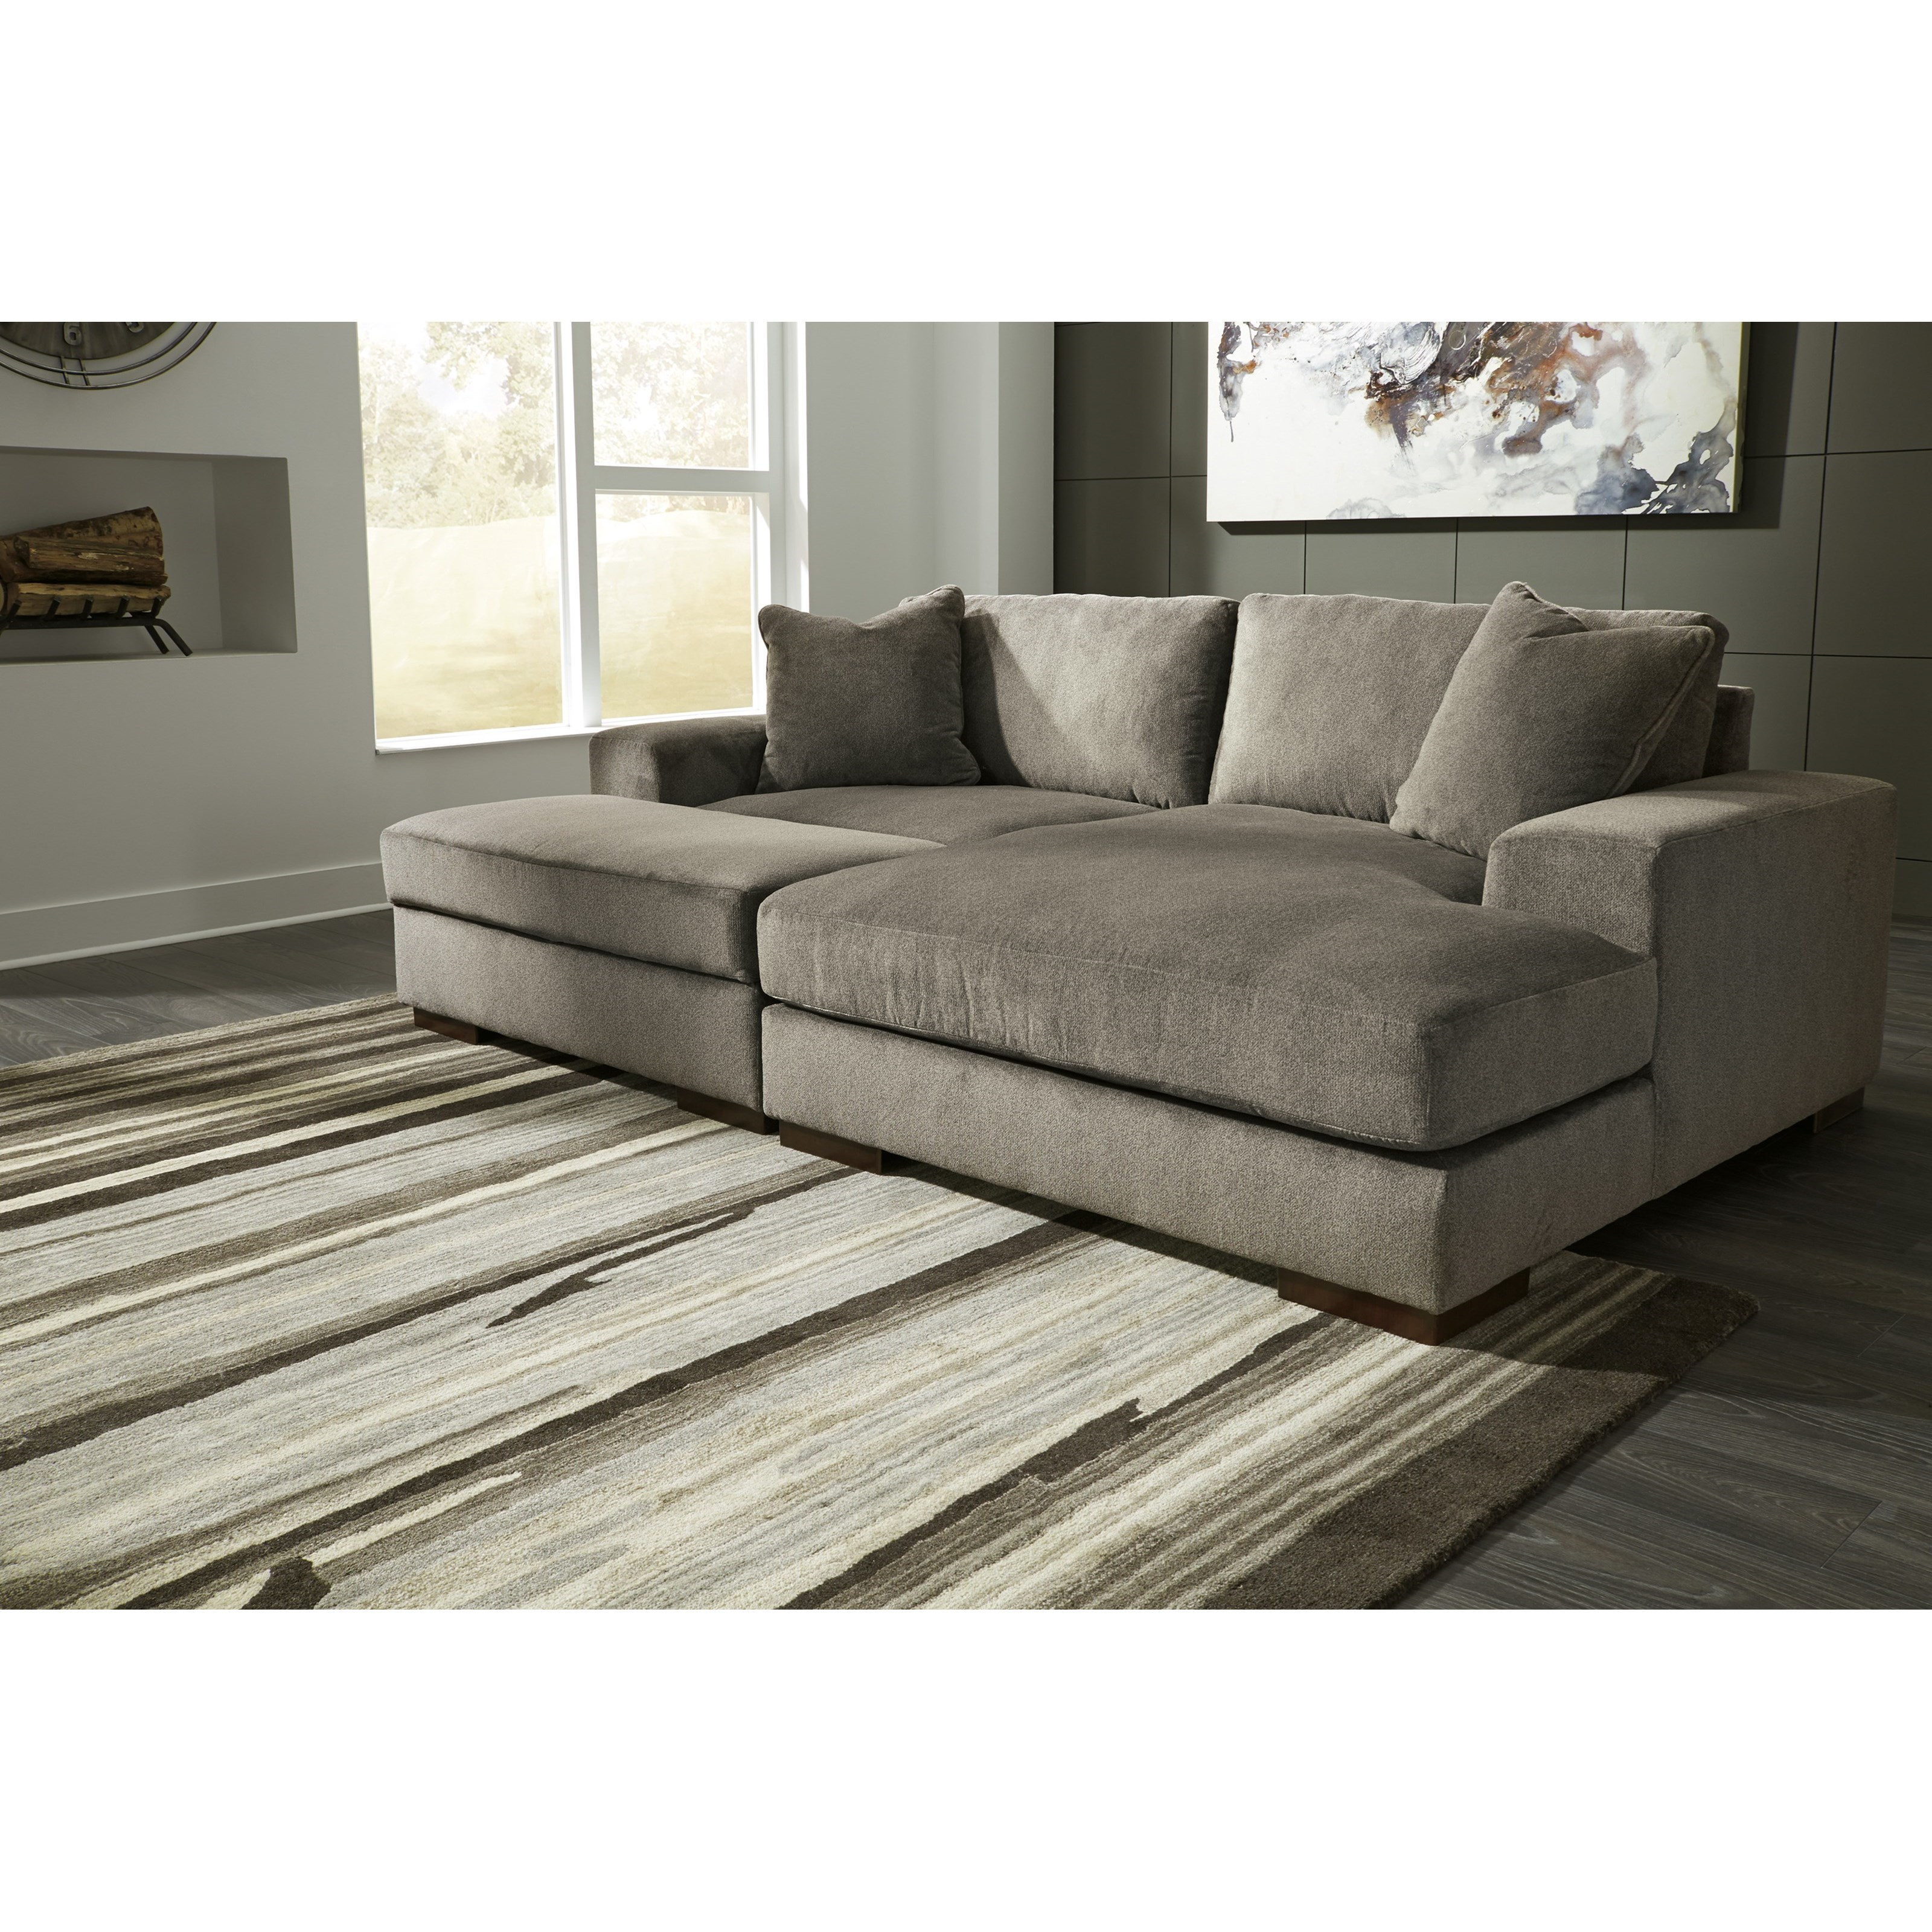 s item bicknell furniture beck with contemporary sofas sectional products benchcraft sofa piece right